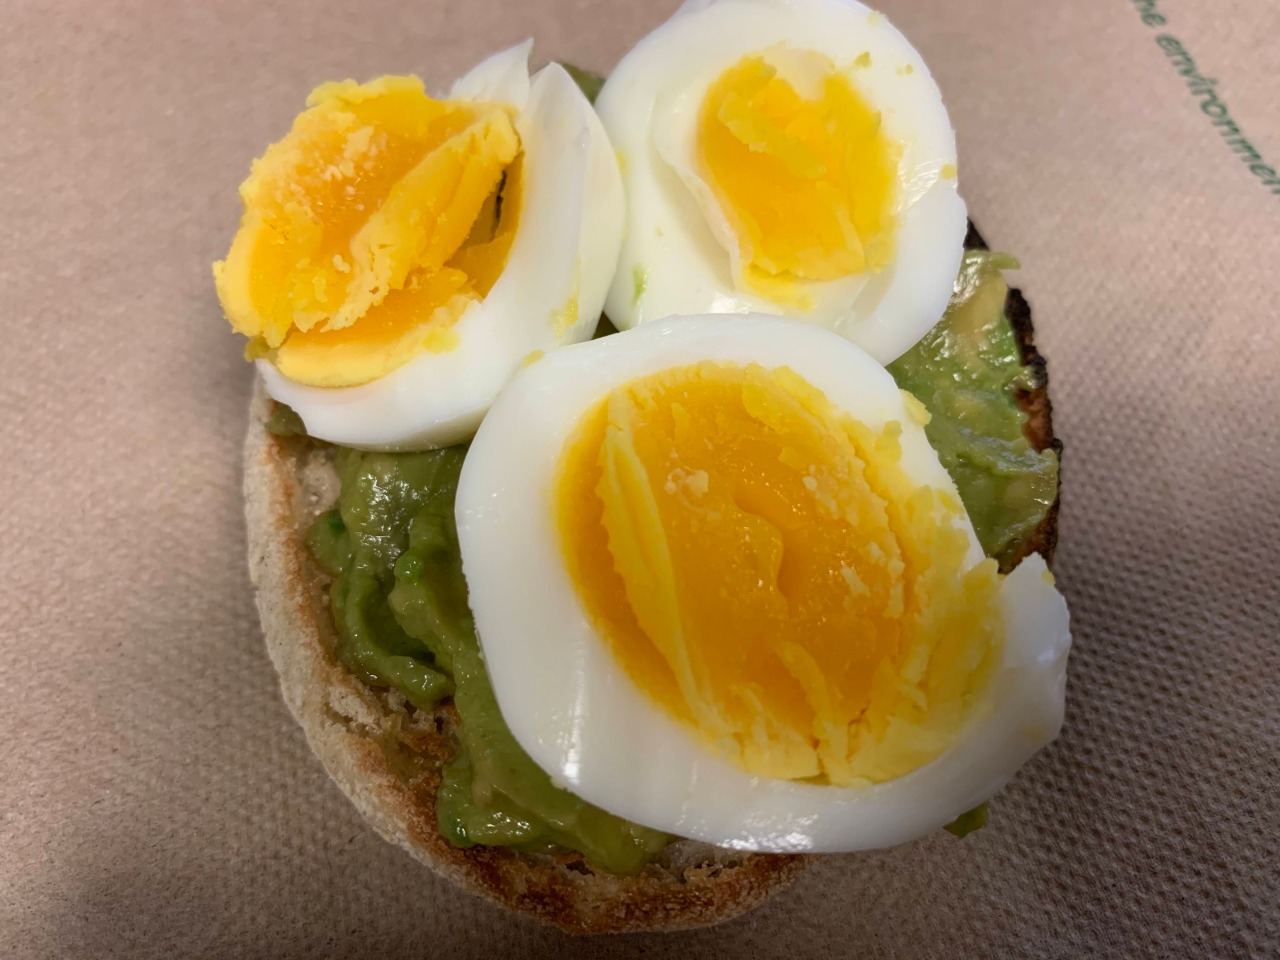 Half an English Muffin with mashed avocado and 3 slices of hard boiled egg